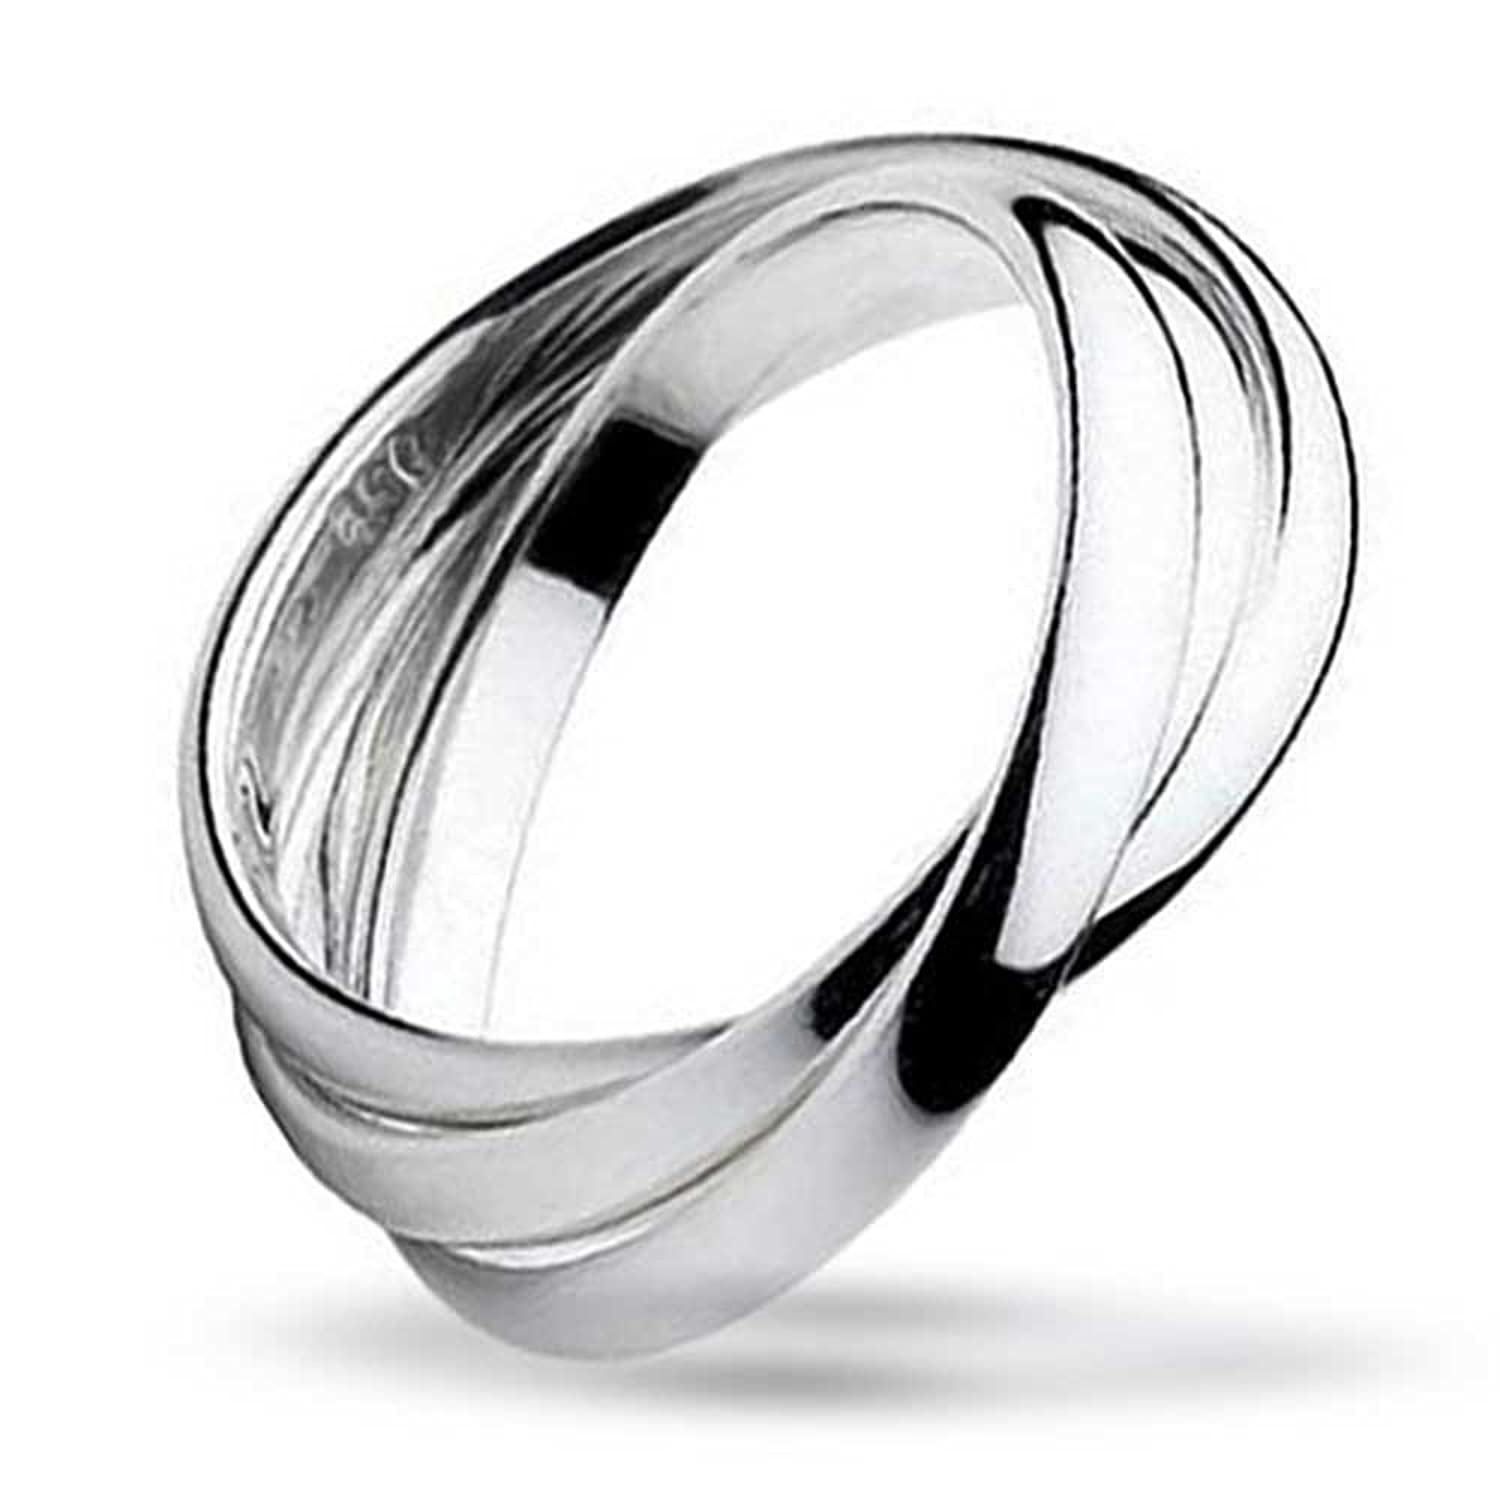 Elements Silver Heavyweight Russian Wedding Band - Size O